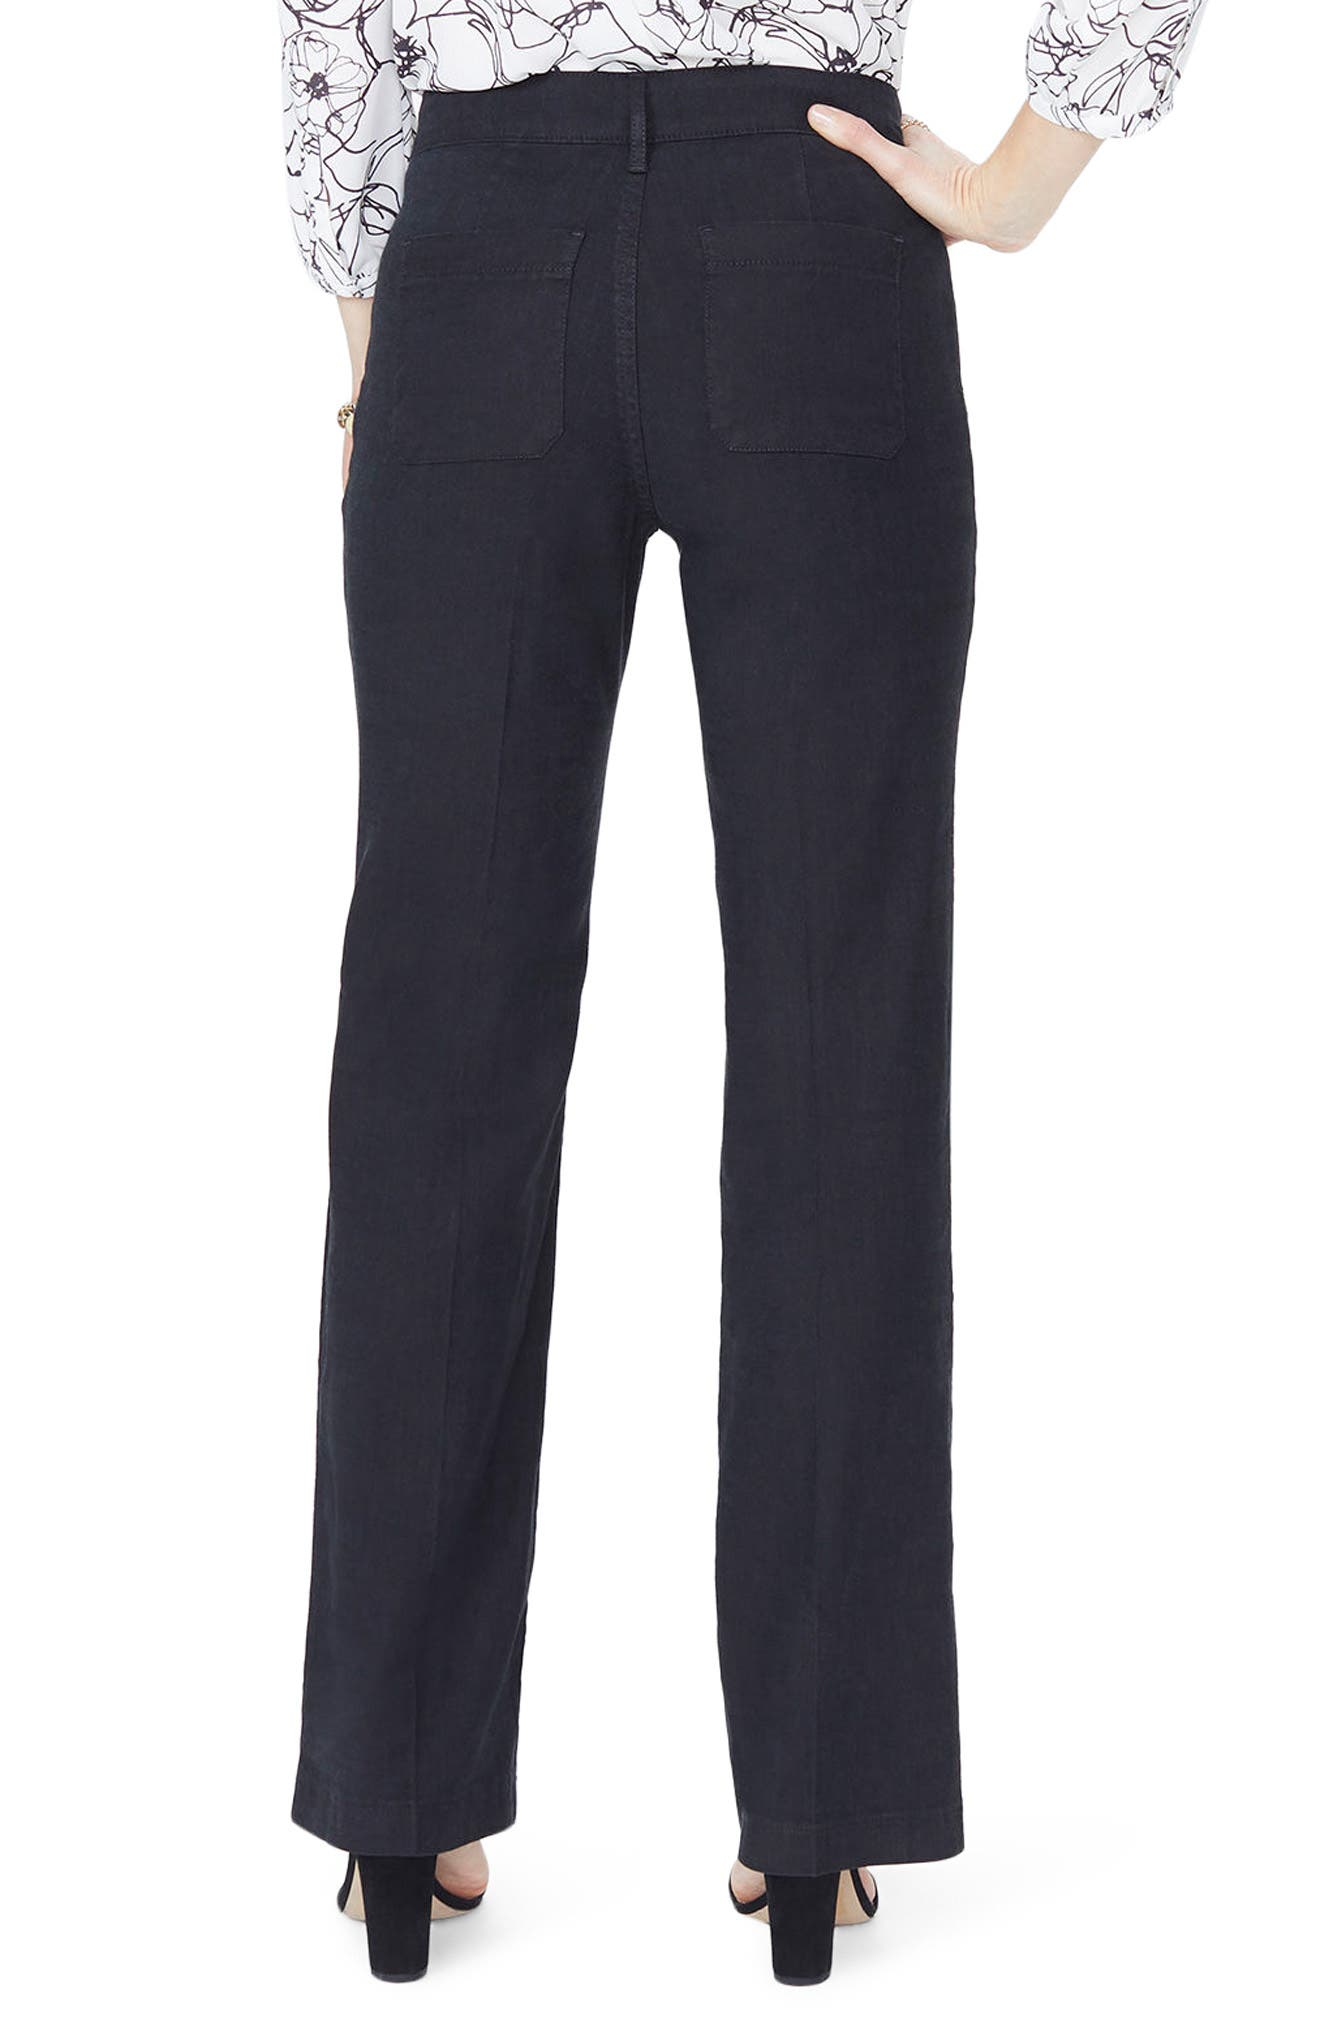 Linen Trousers,                             Alternate thumbnail 2, color,                             001